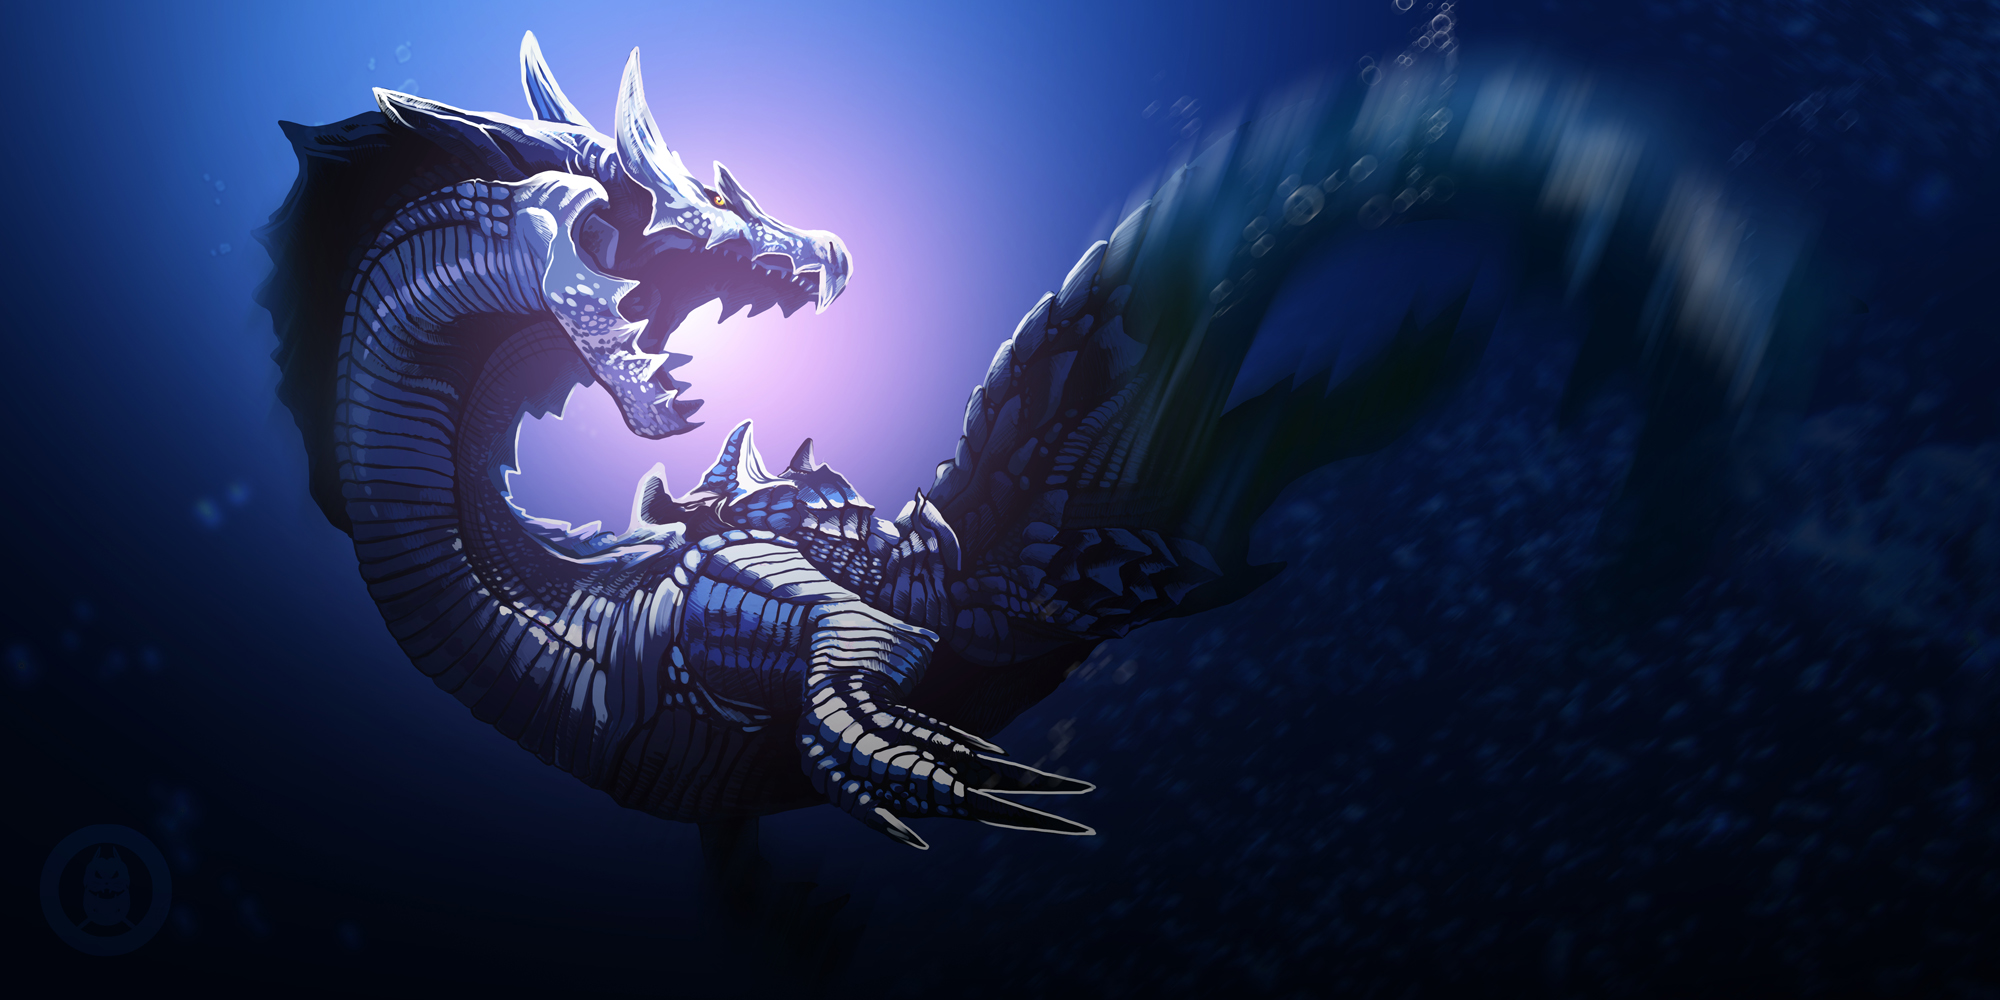 lagiacrus by py3rr on deviantart